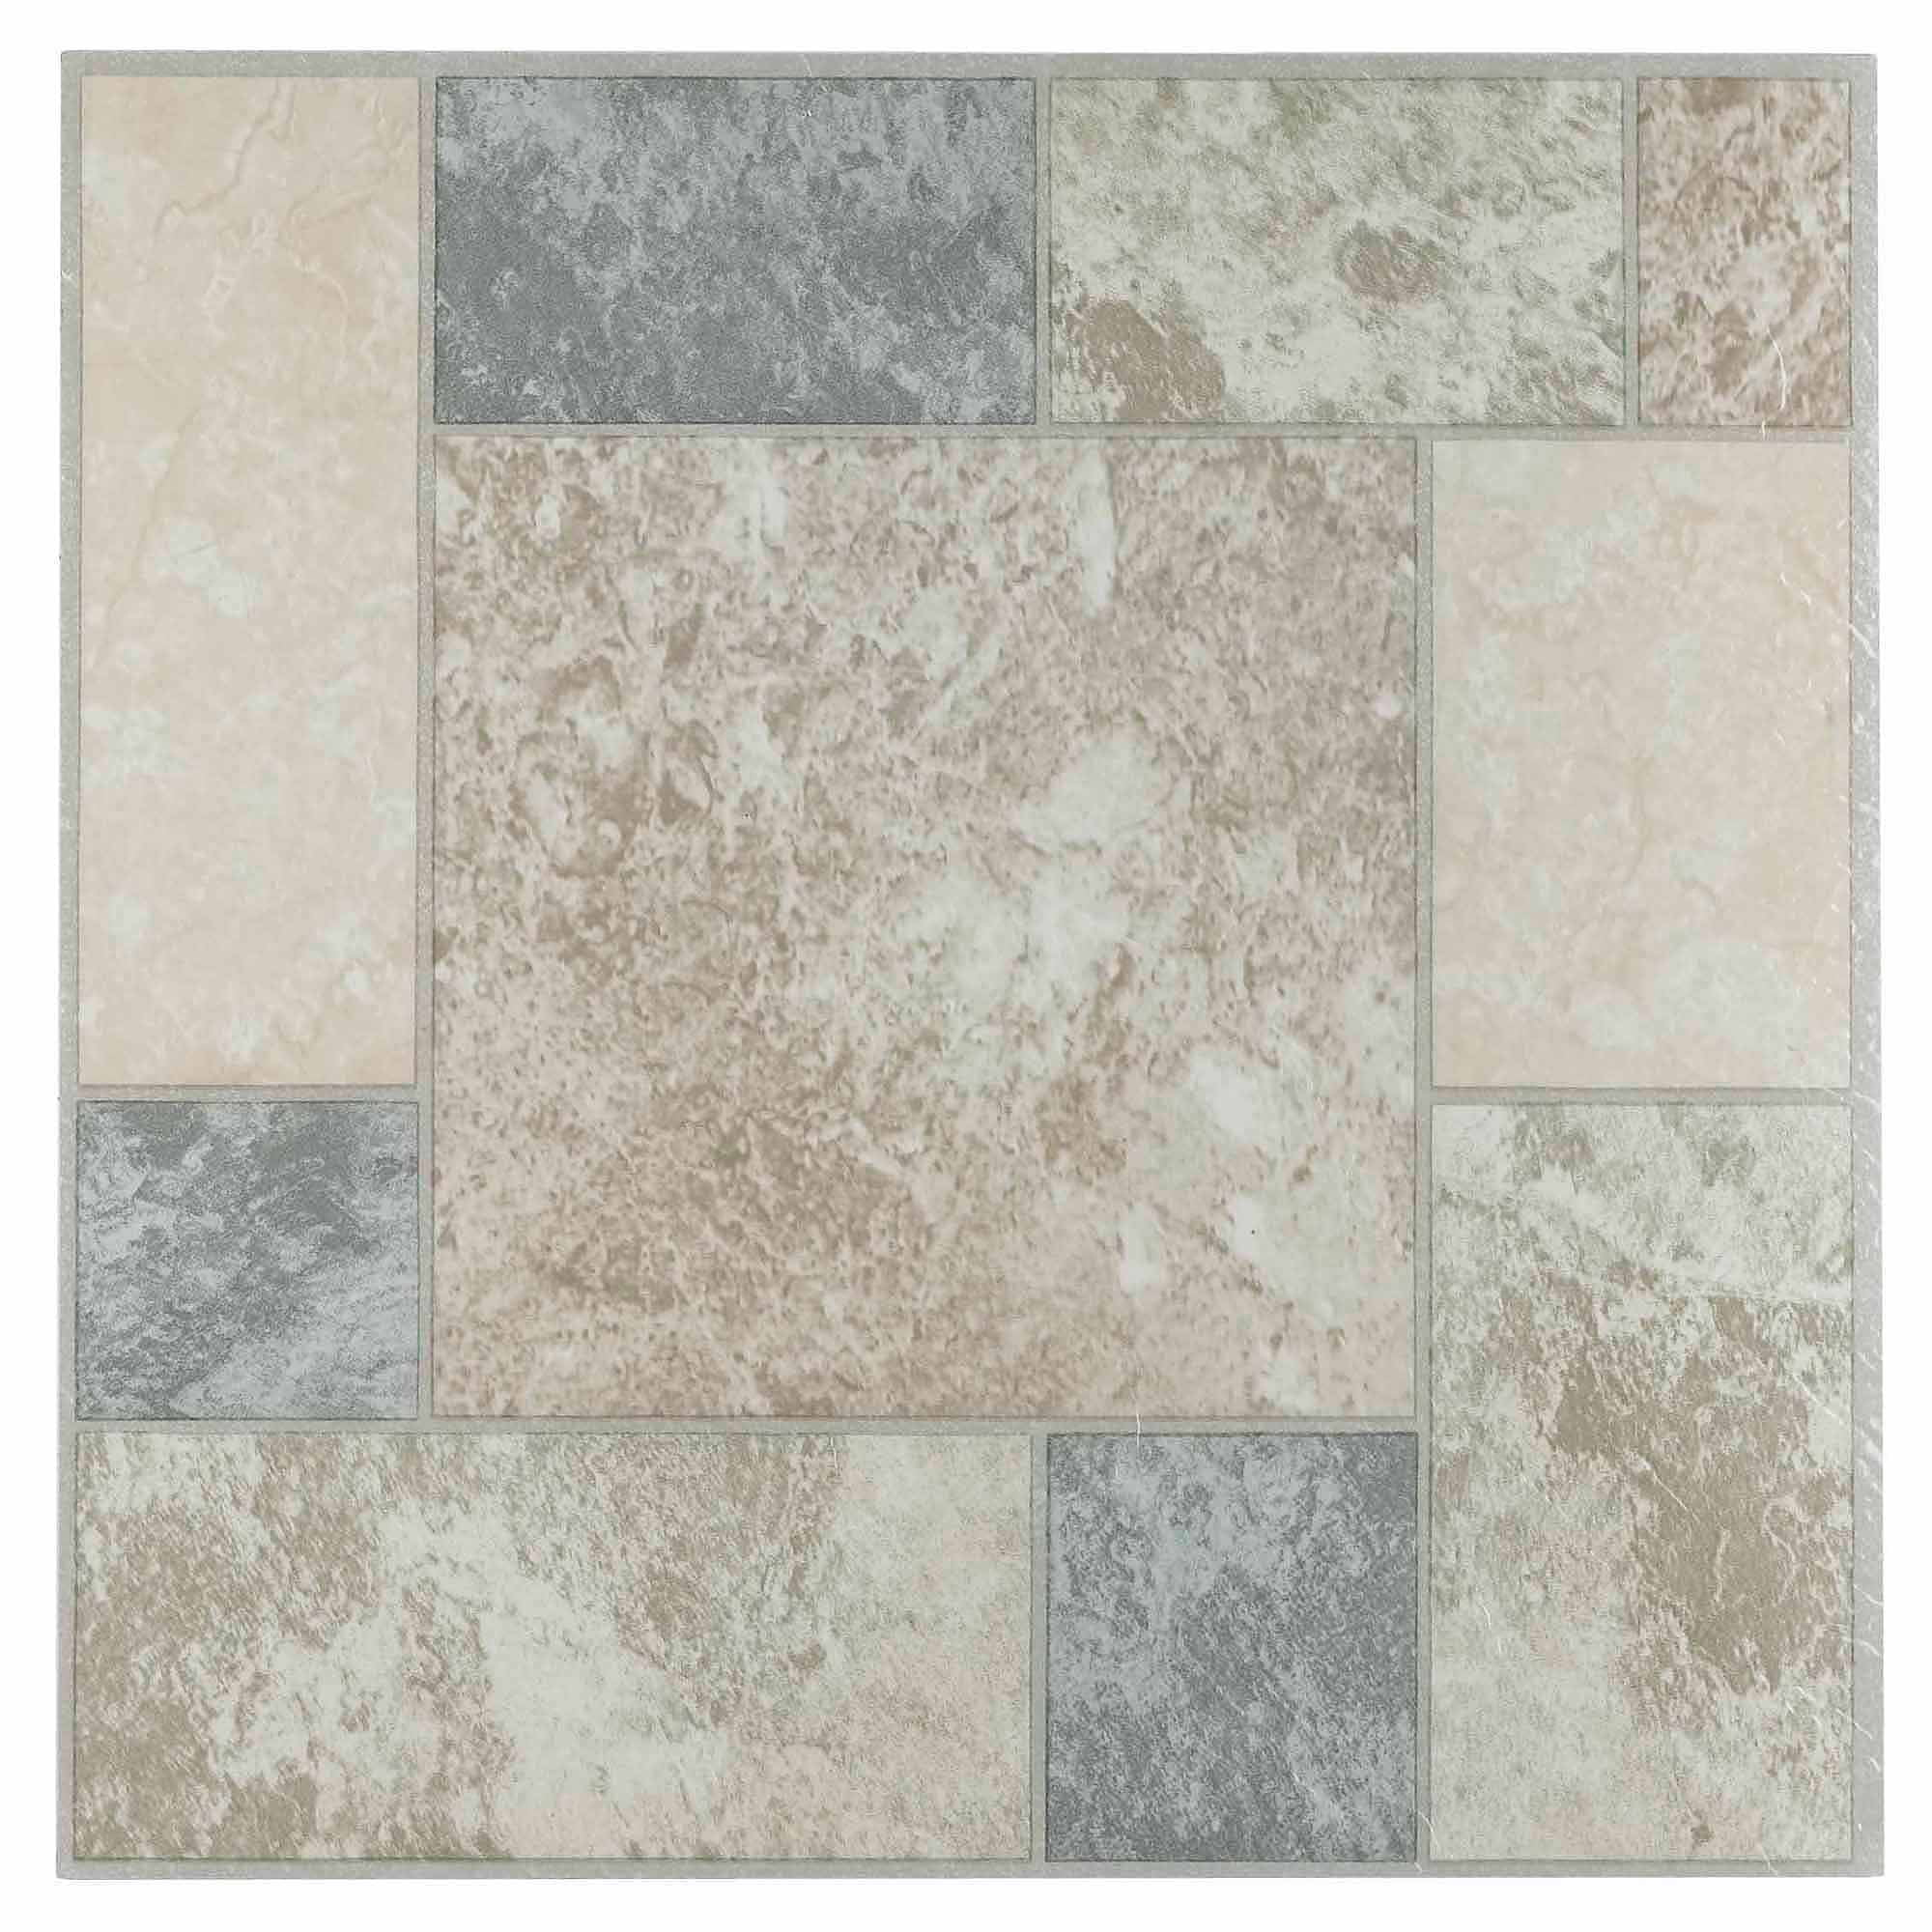 Nexus marble blocks 12x12self adhesive vinyl floor tile 20 tiles nexus marble blocks 12x12self adhesive vinyl floor tile 20 tiles20 sqft walmart dailygadgetfo Image collections